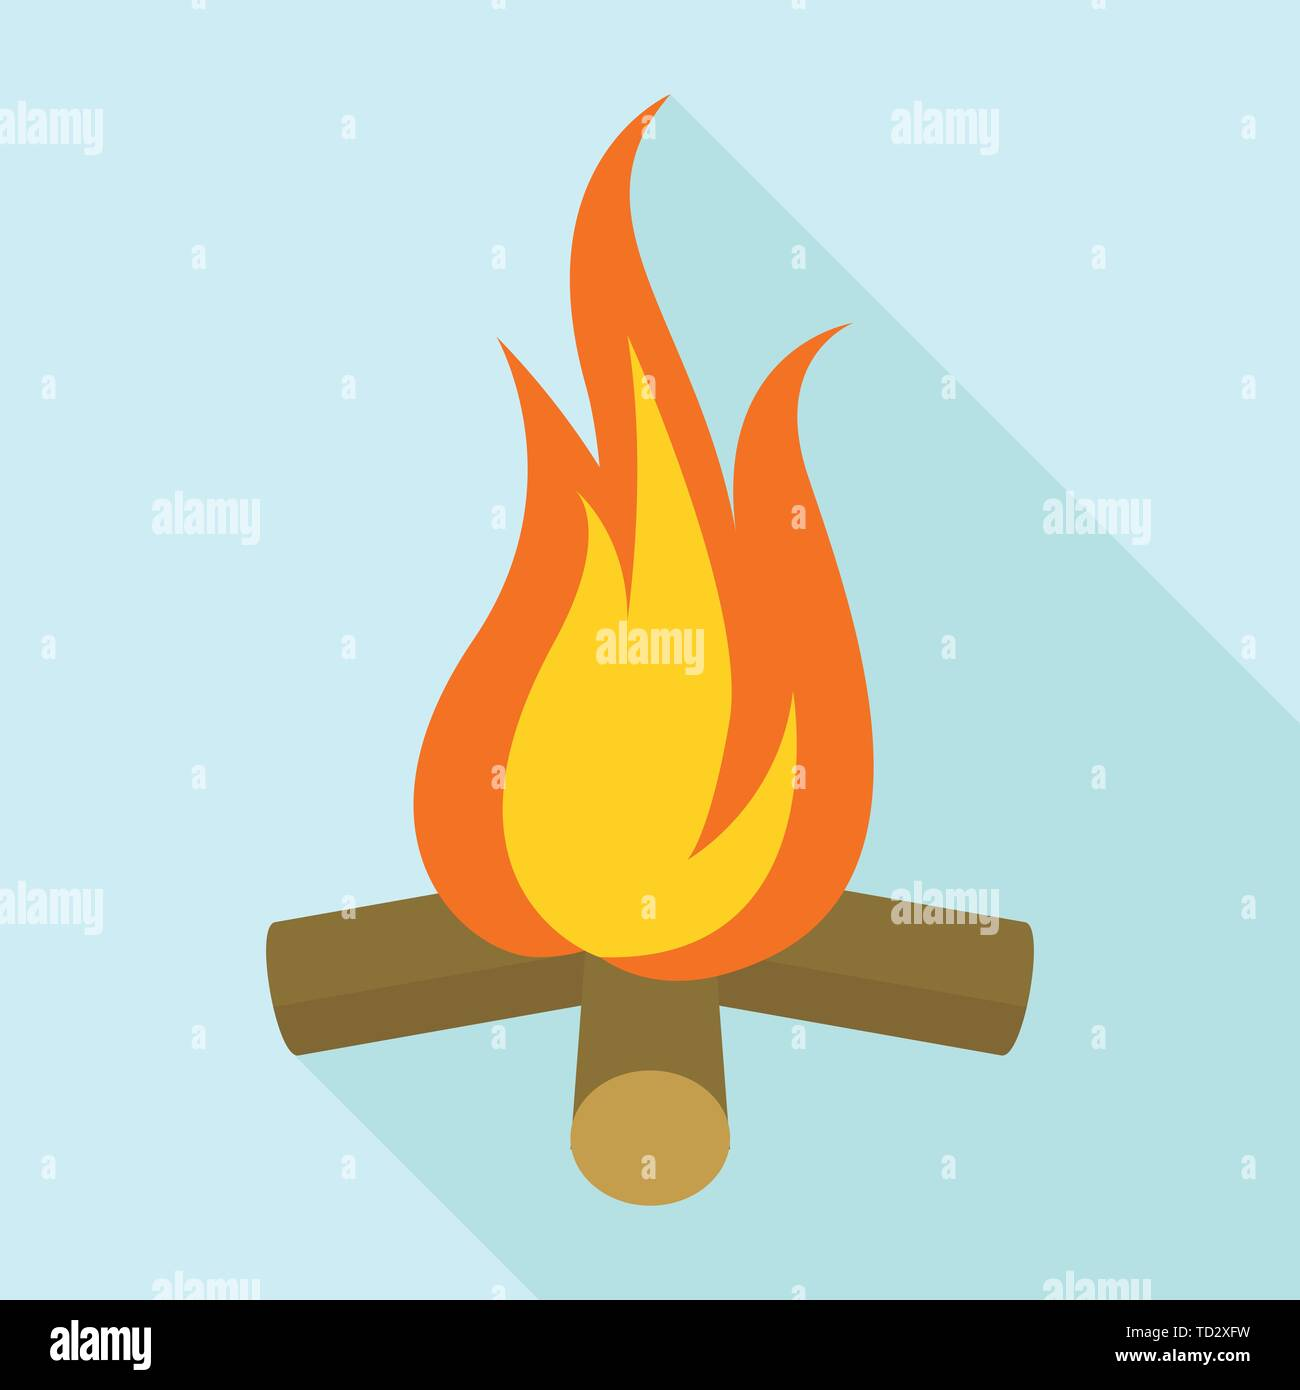 Campfire icon, flat style - Stock Image